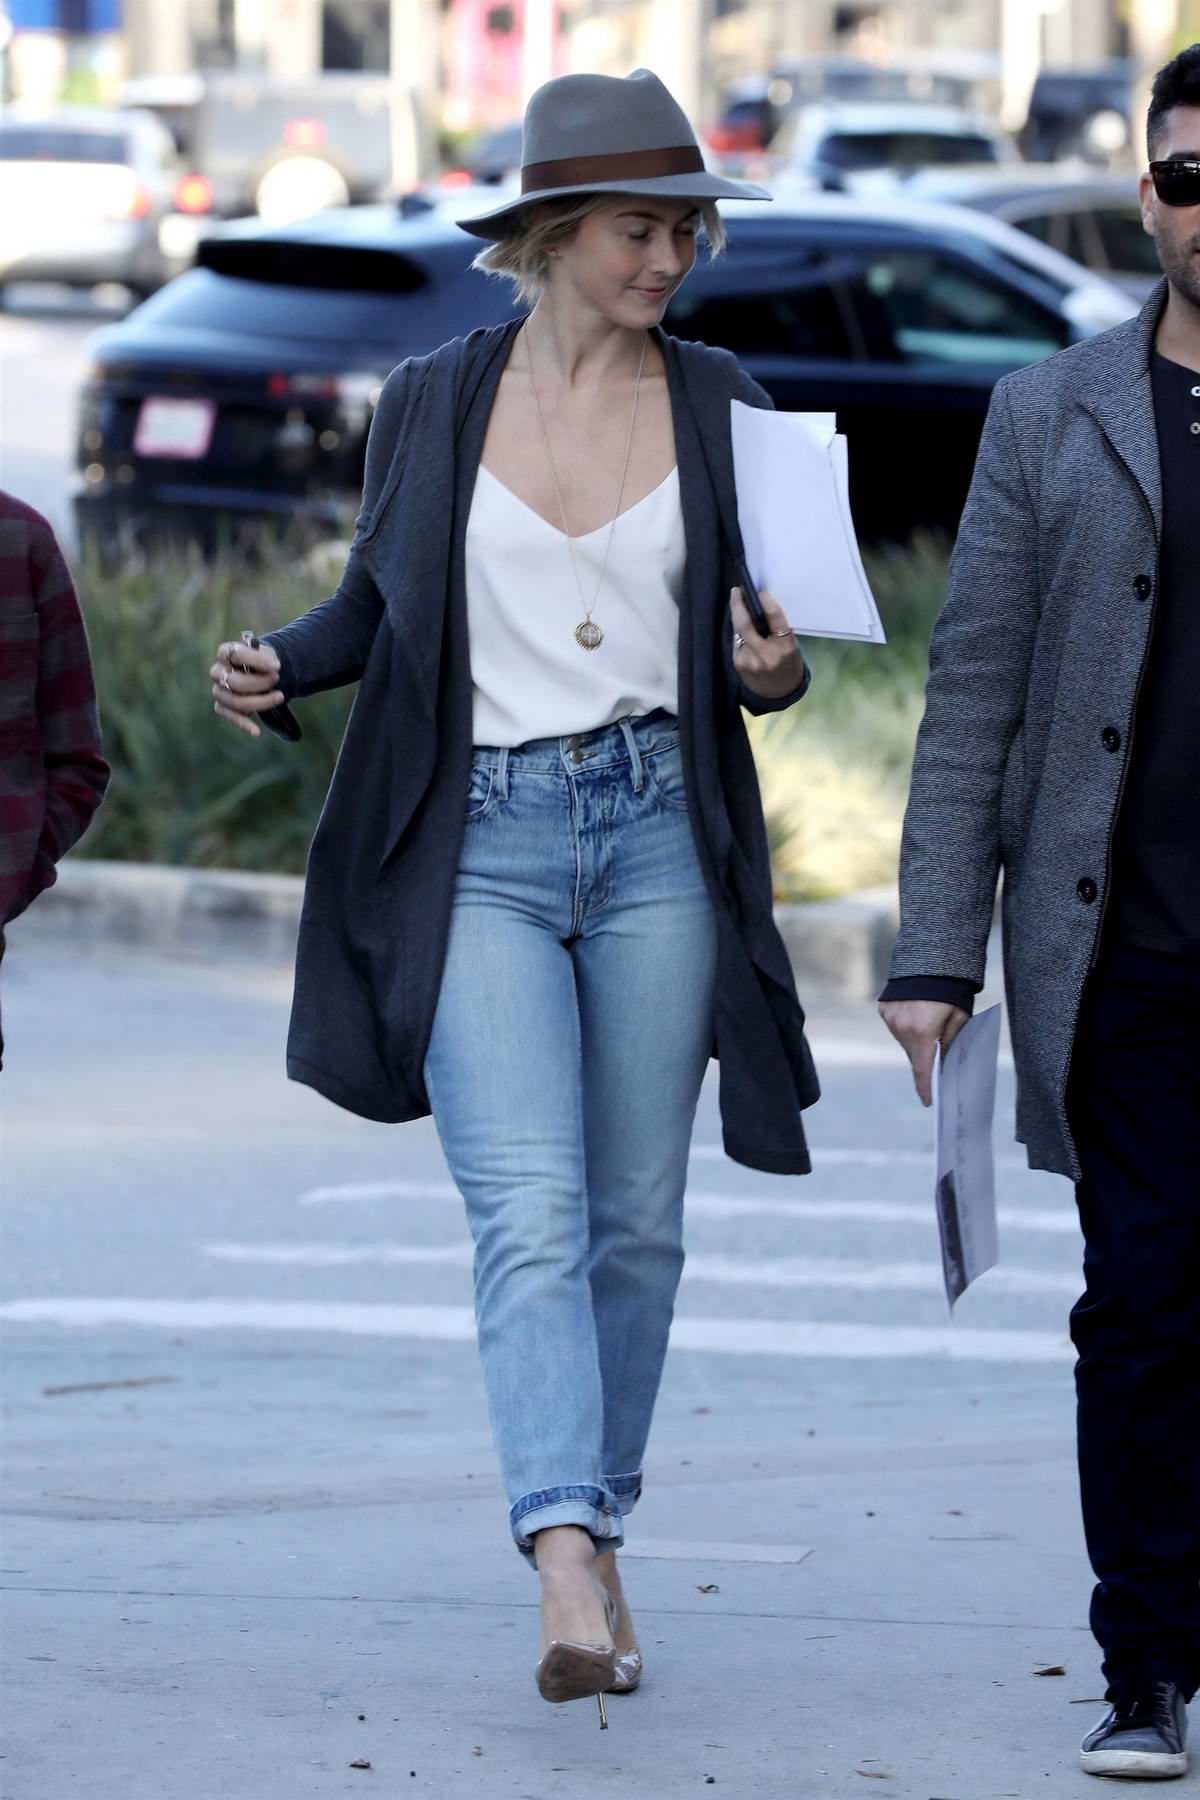 Julianne Hough steps out in white top and jeans with a grey fedora ...